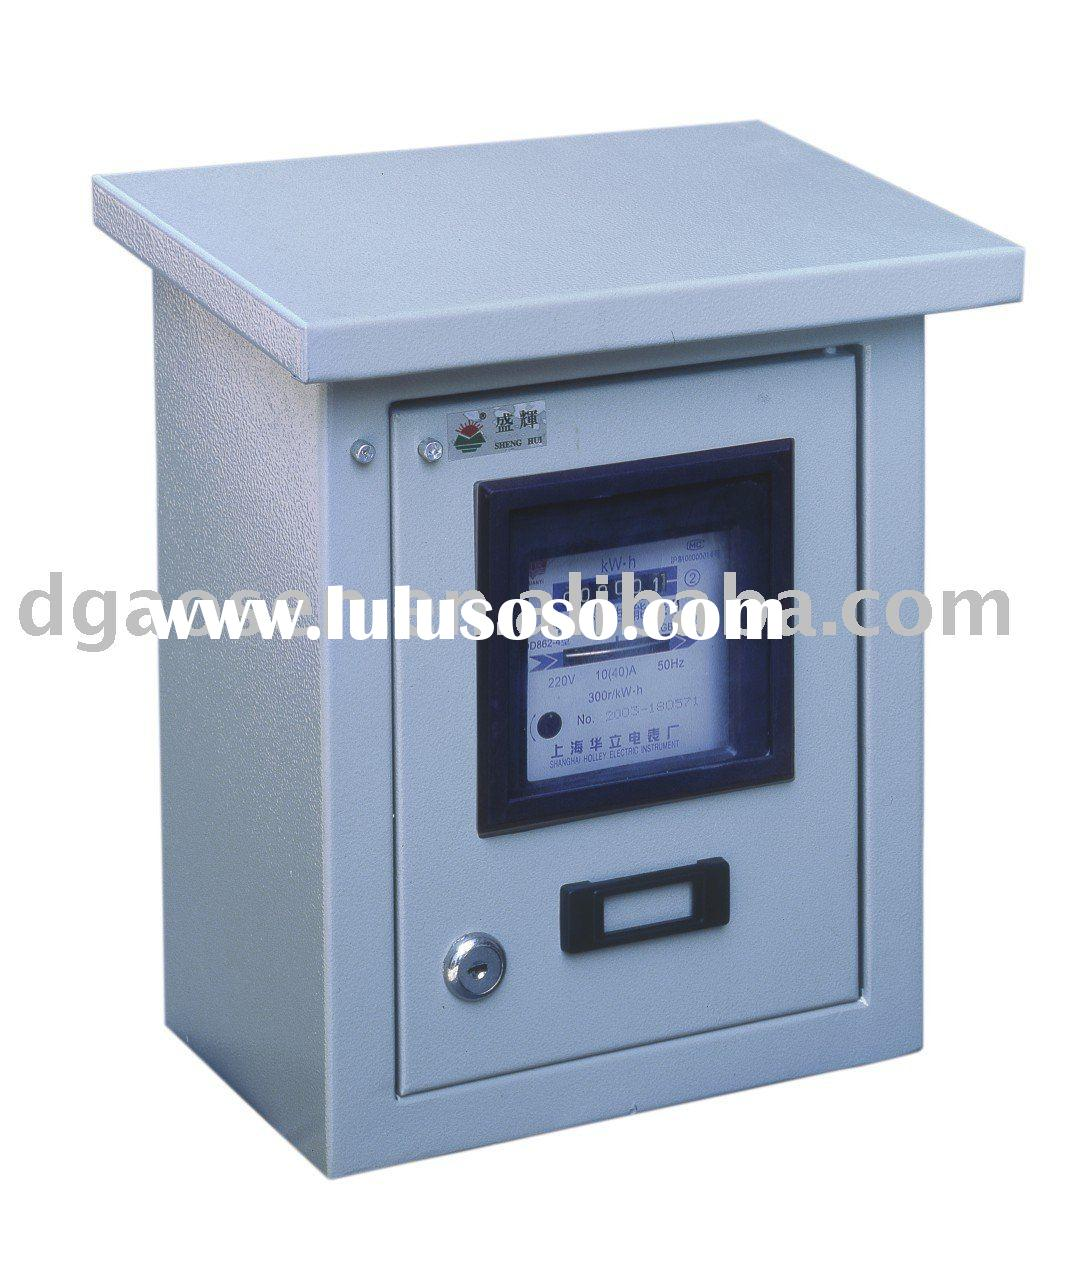 Decorative Gas Meter Box Uk Decorative Gas Meter Box Uk Manufacturers In LuL